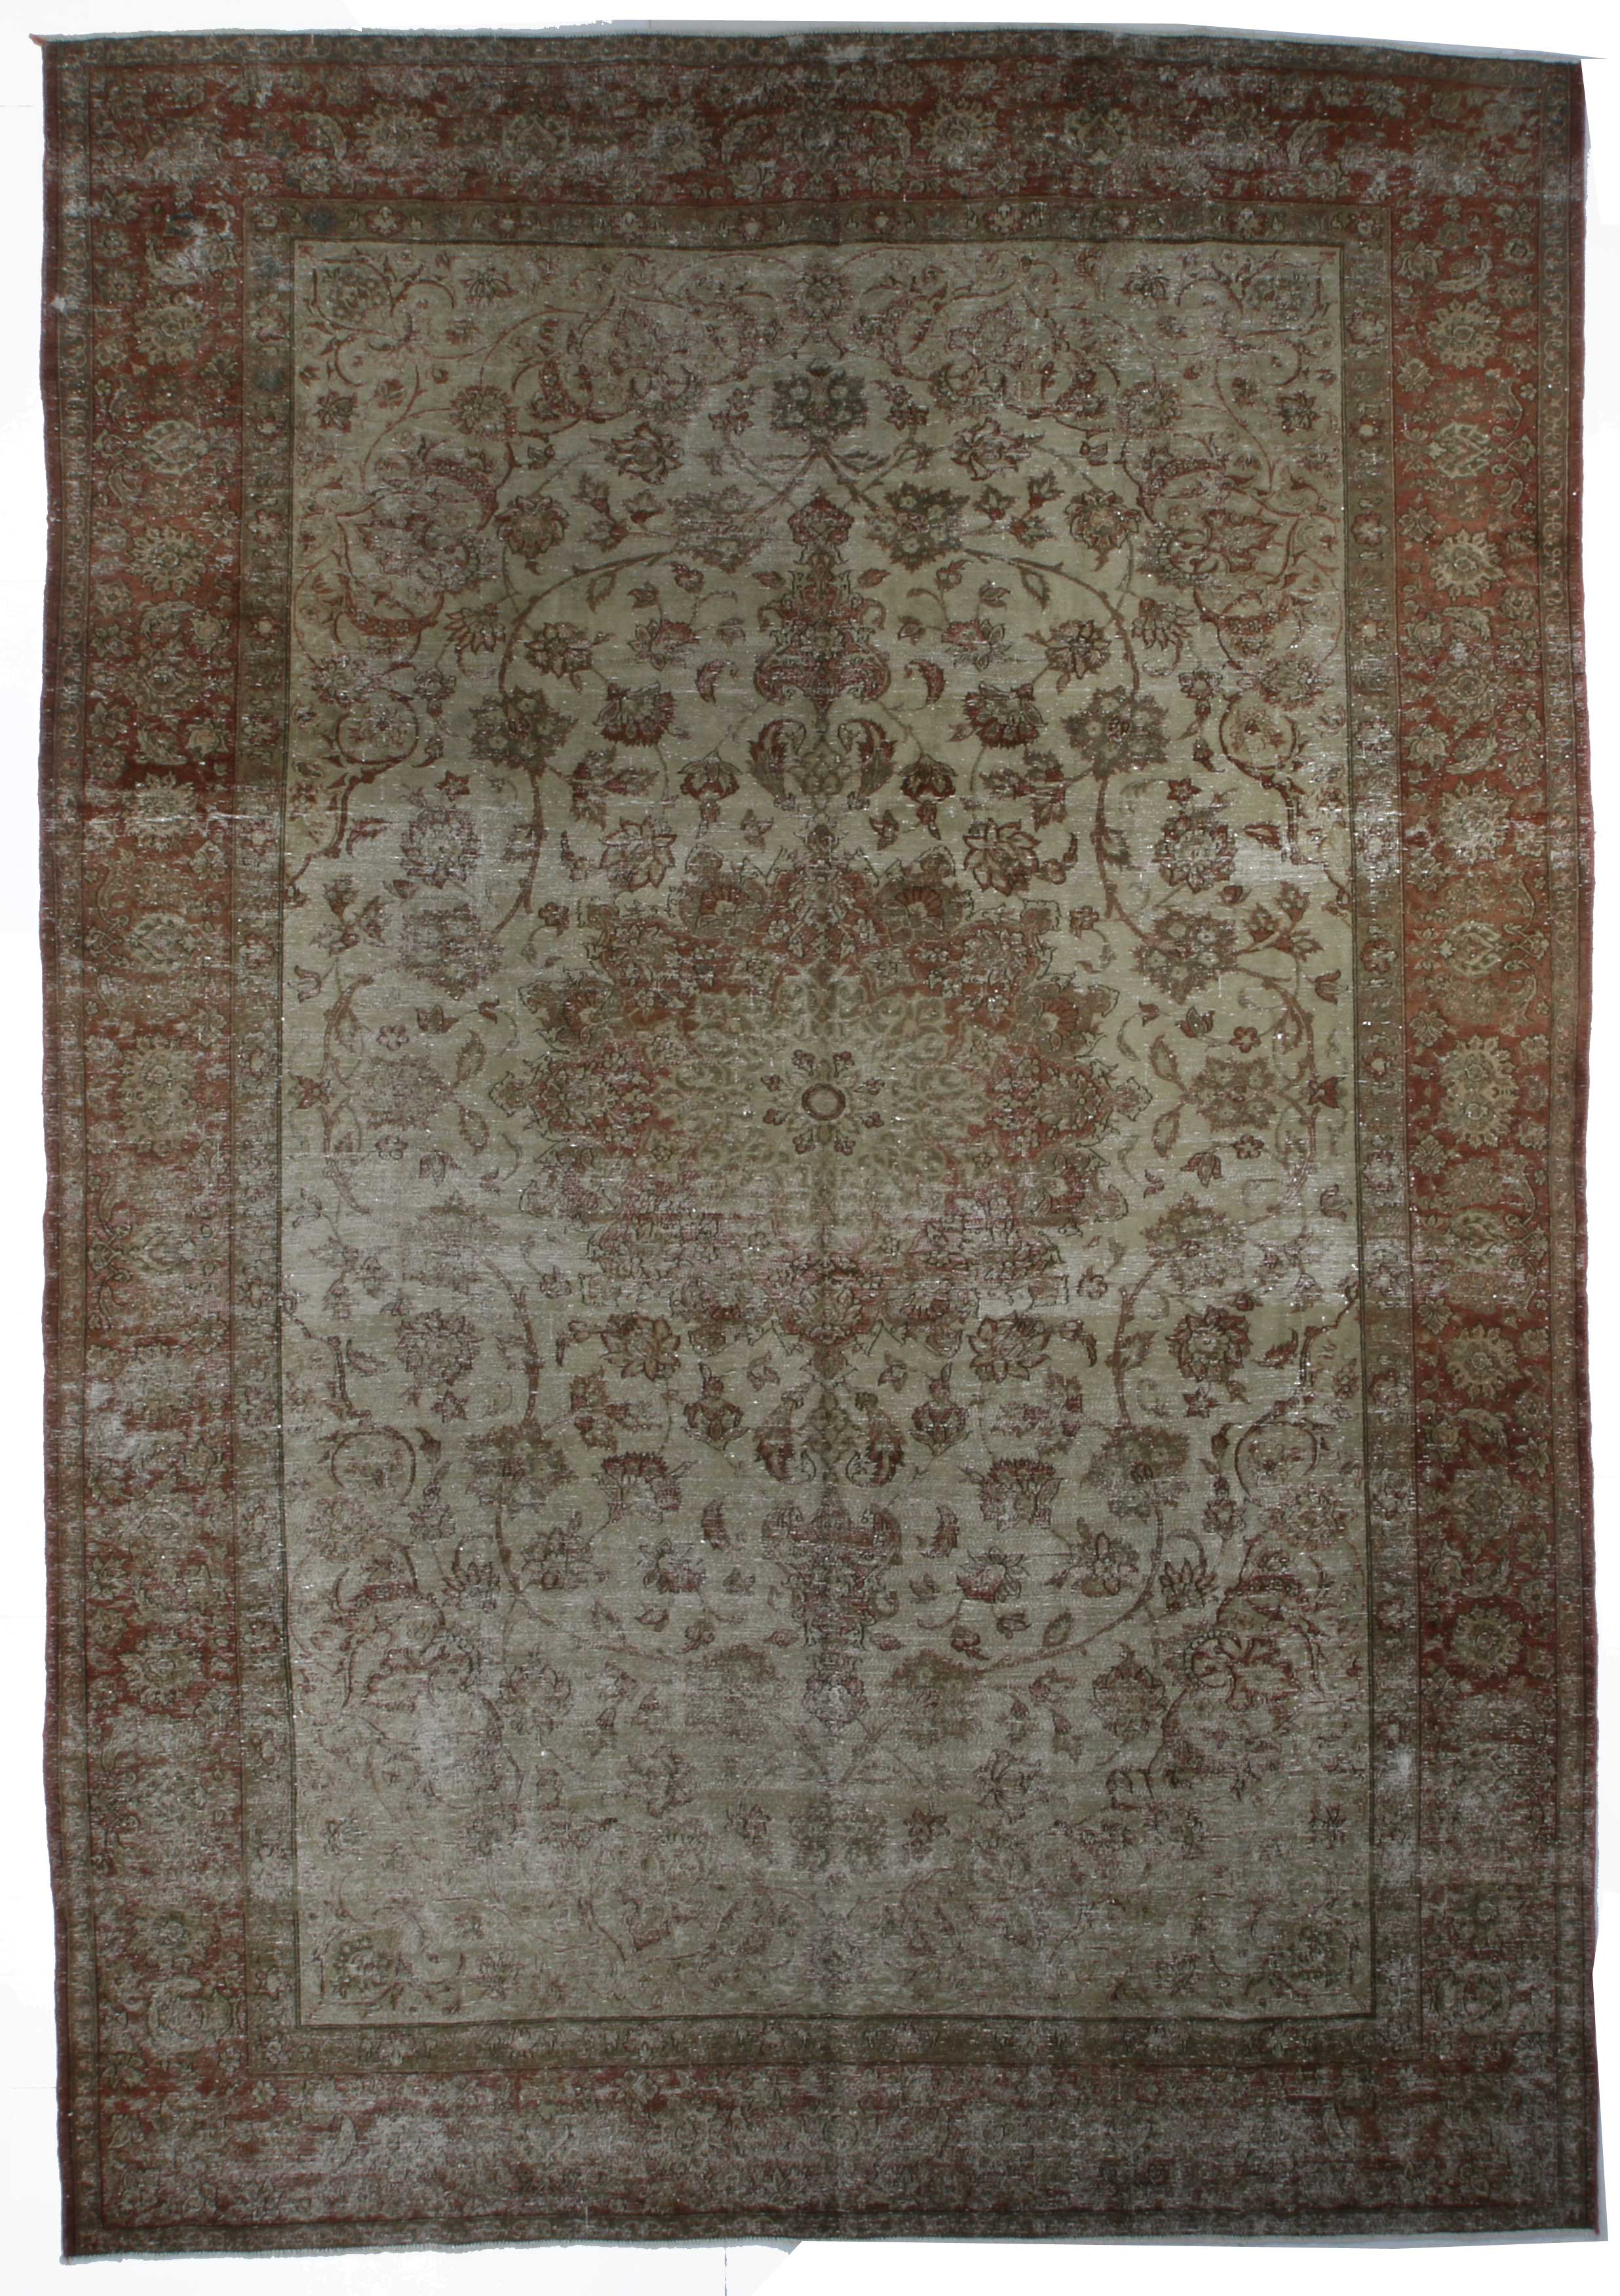 b788010c7f Exclusive Oriental Rugs. Comprehensive collection of antique rugs on sale  ...